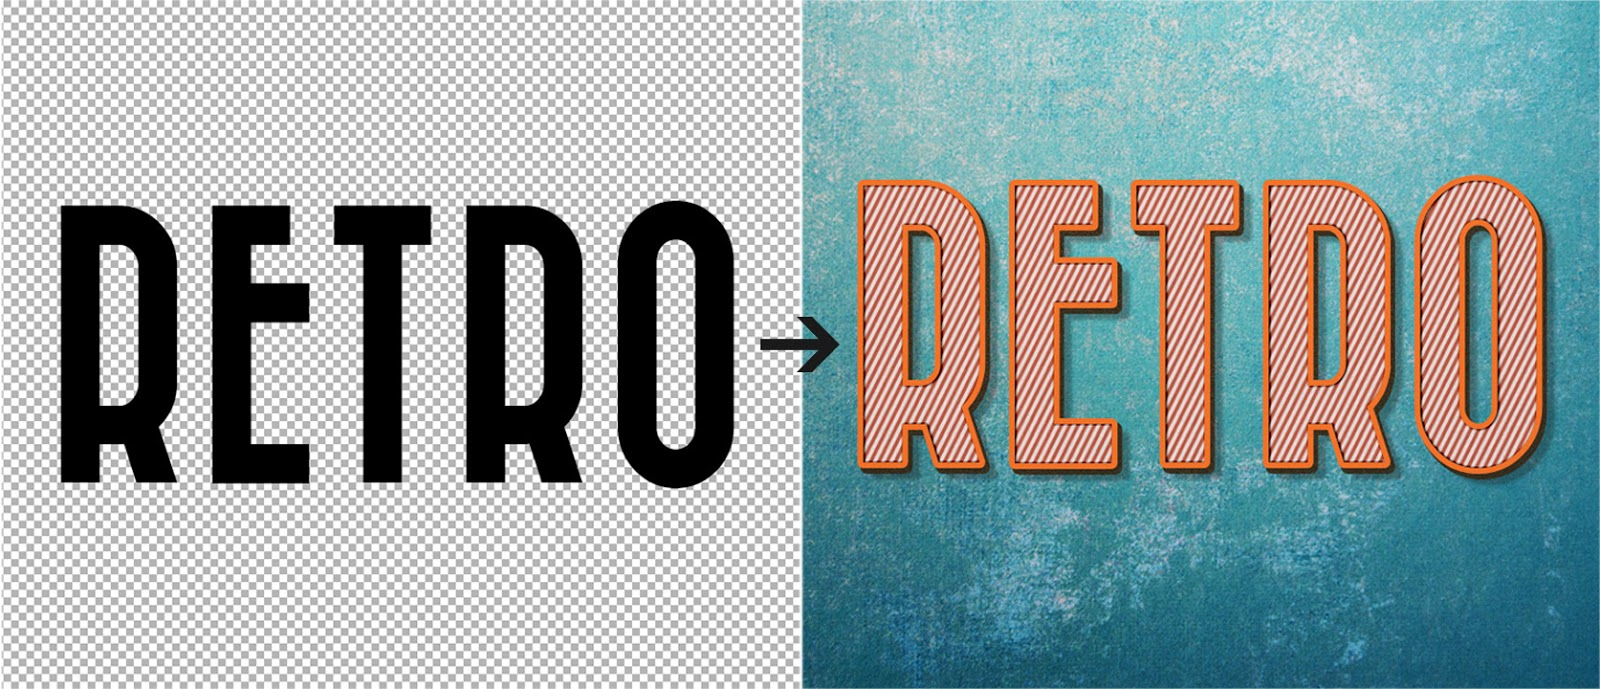 How To Create a Cool, Editable Retro Text Effect in